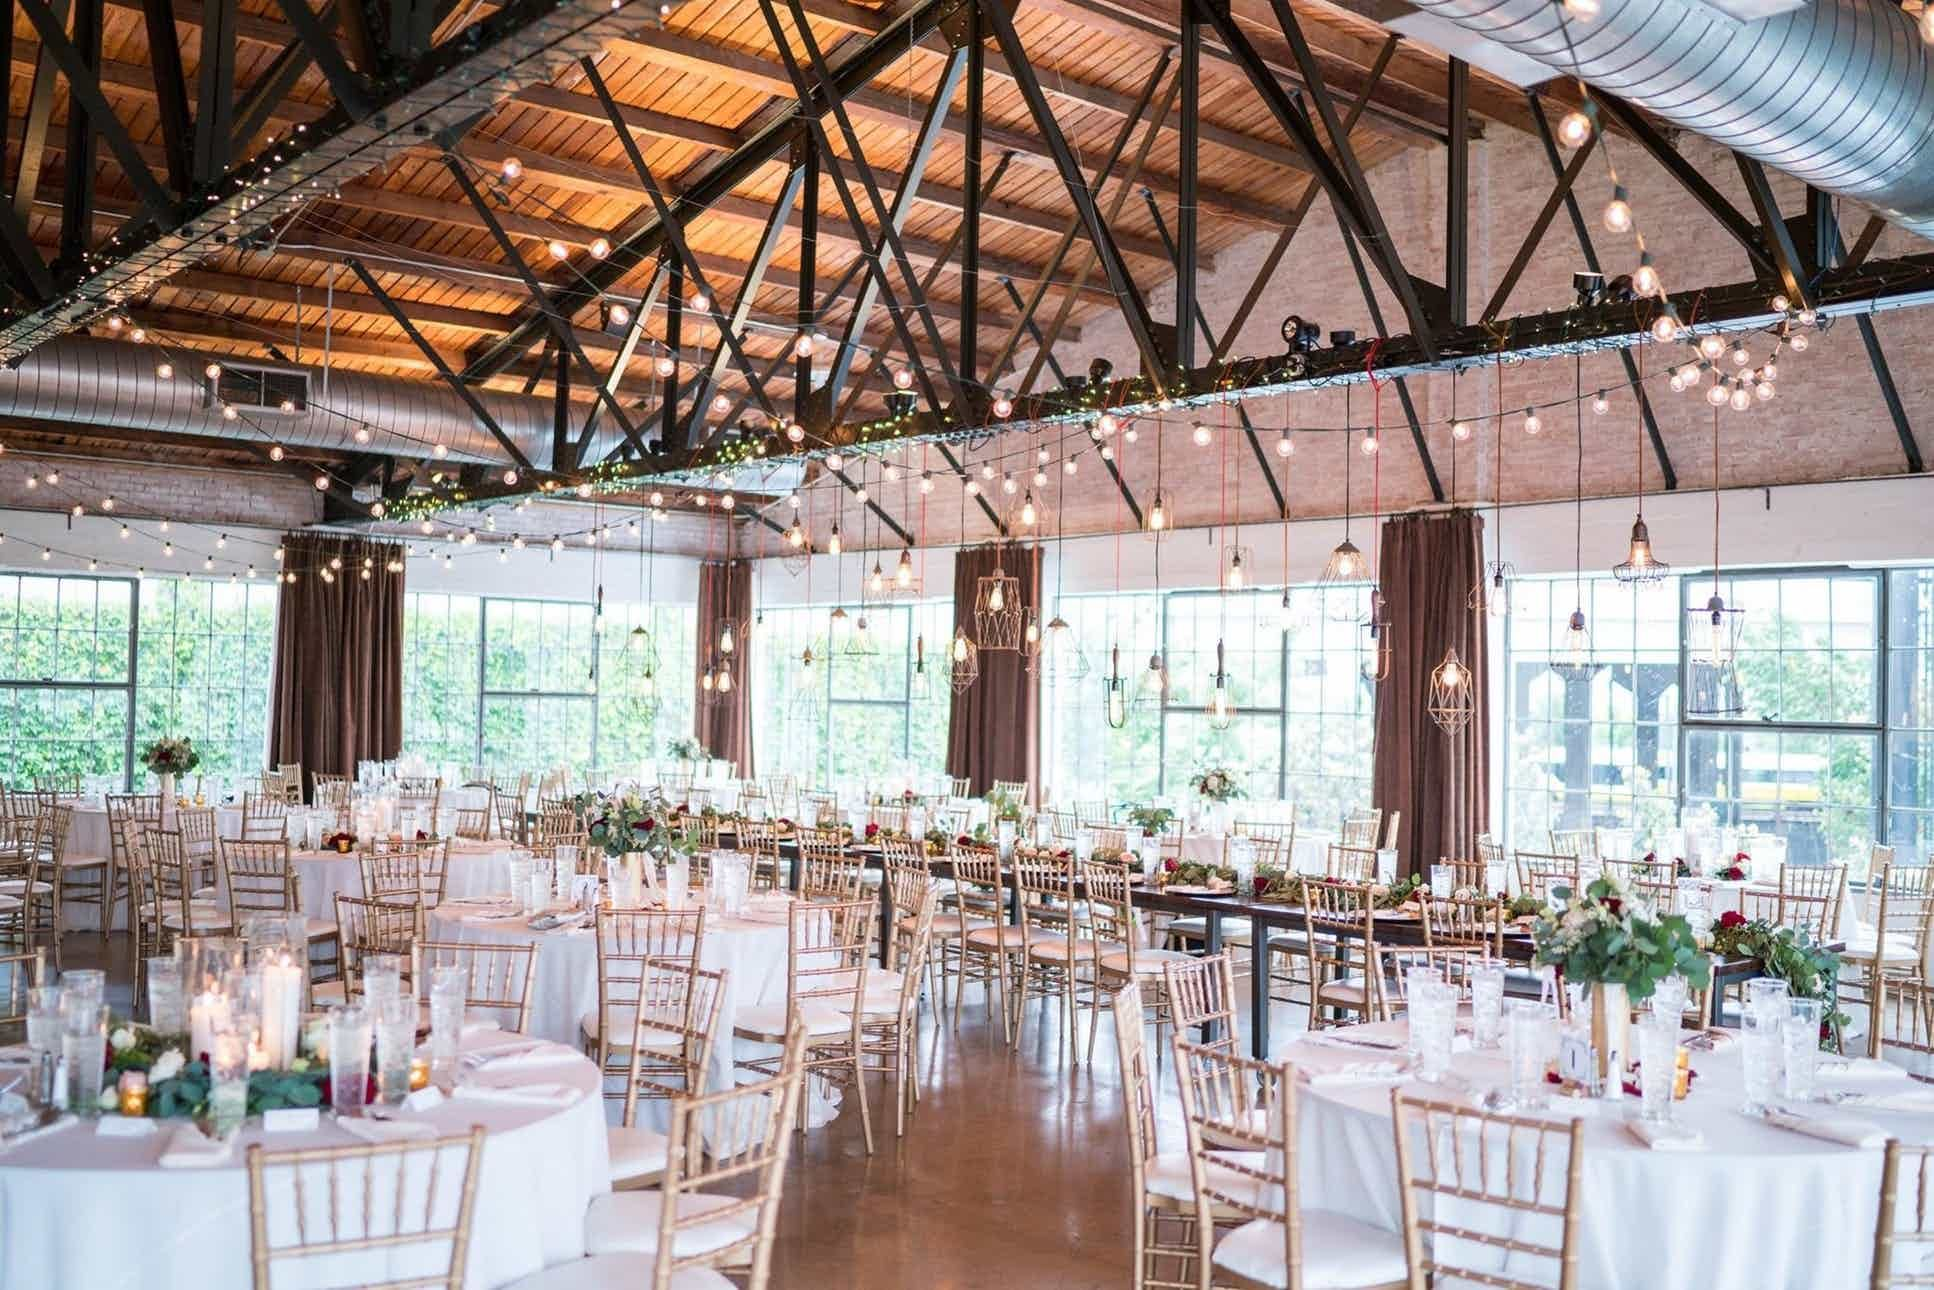 Hickory Street Annex Texas Wedding Venue Dallas TX 75226 ...